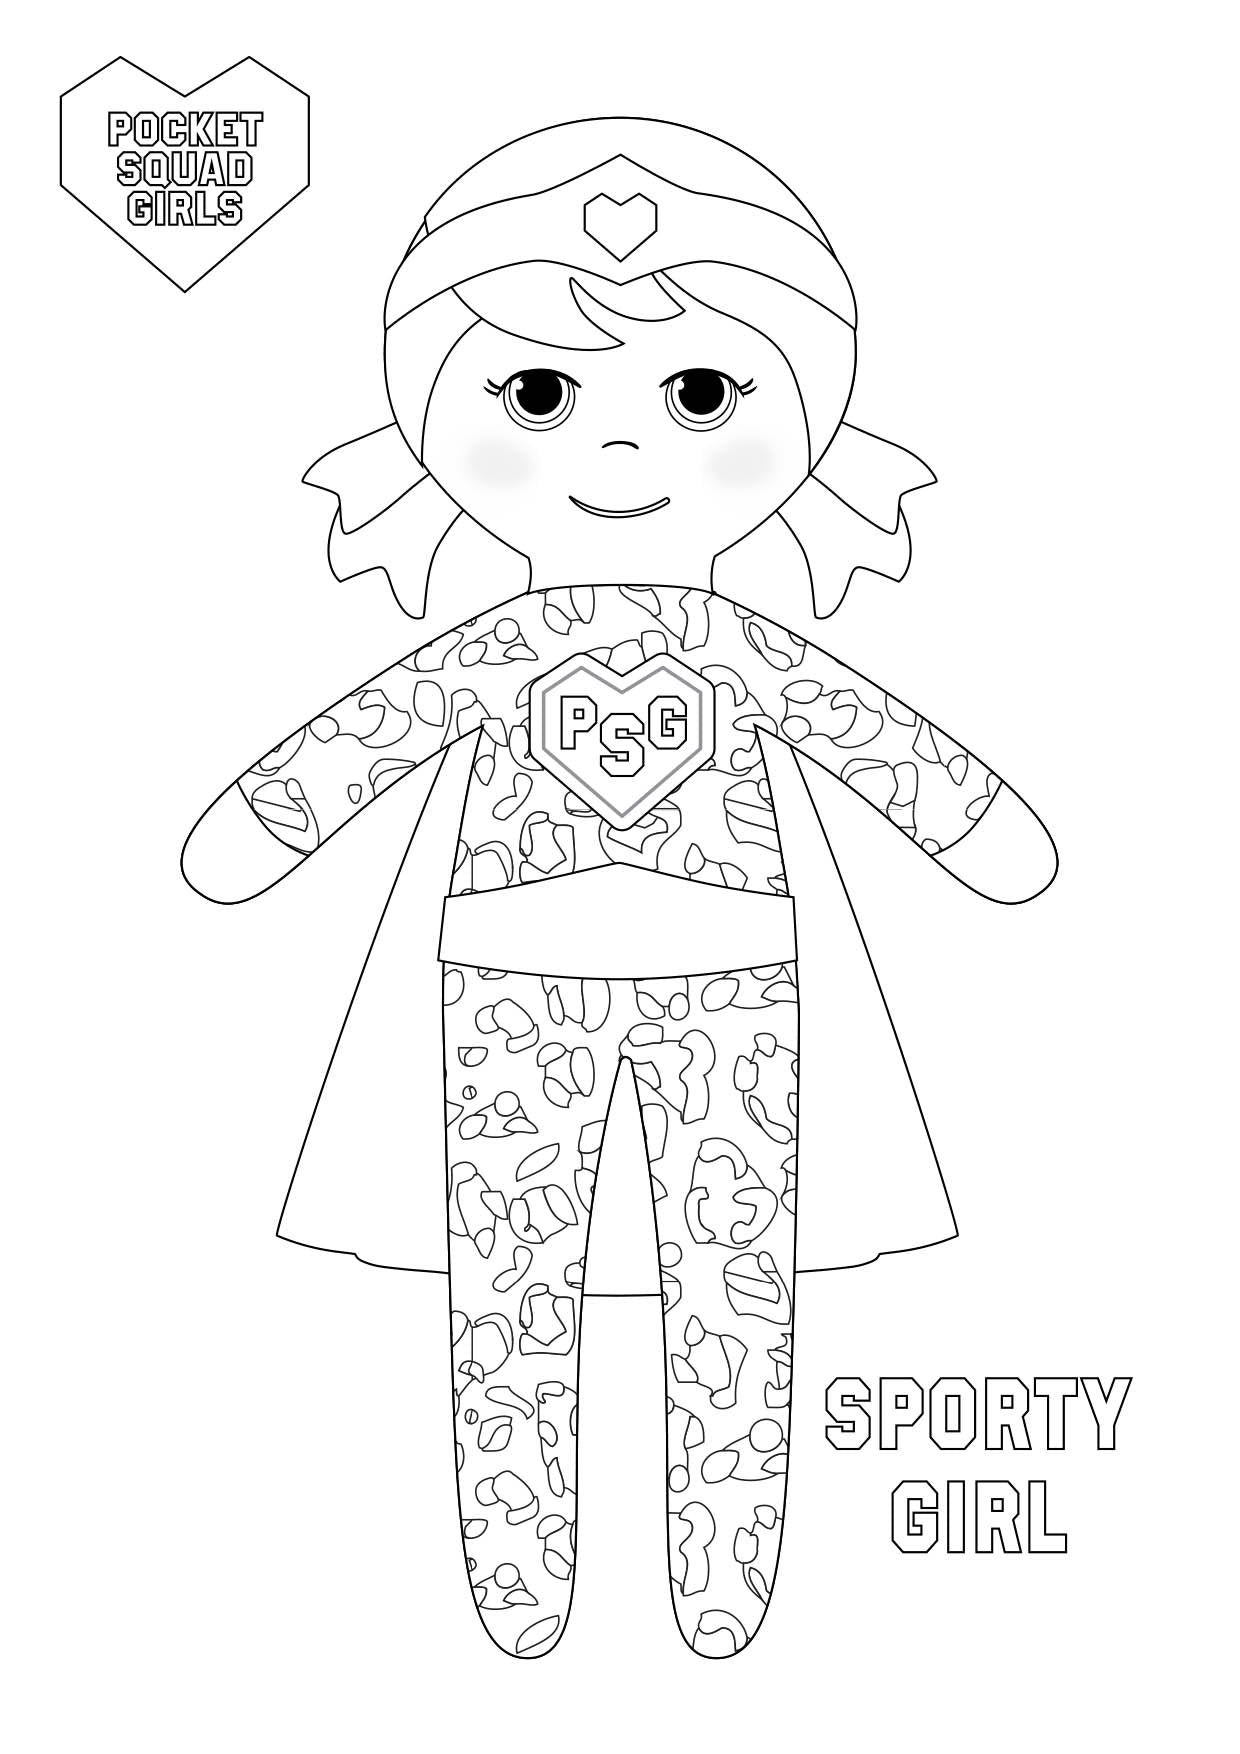 Pocket Squad Girls Sporty Girl colouring-in PDF